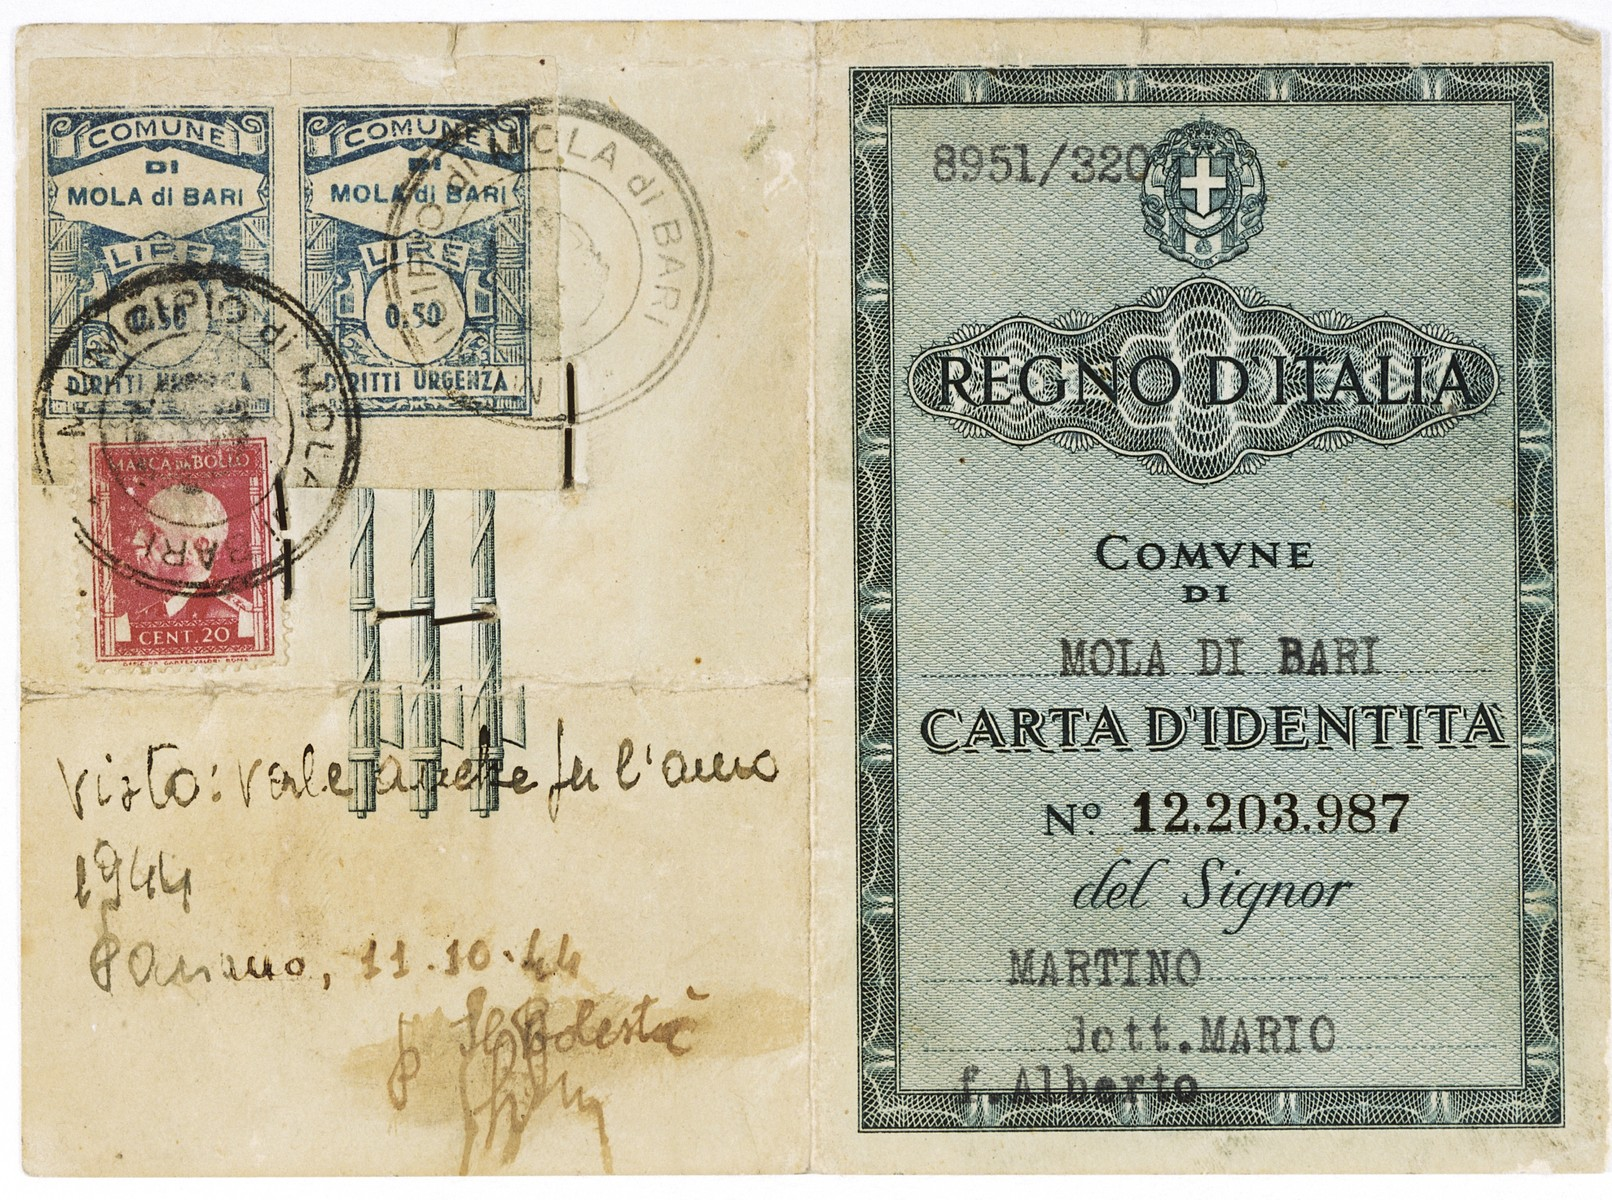 False identification card issued to the Italian Jew Marcello Morpugo, who was living under the alias Mario Martino during the German occupation of Italy.